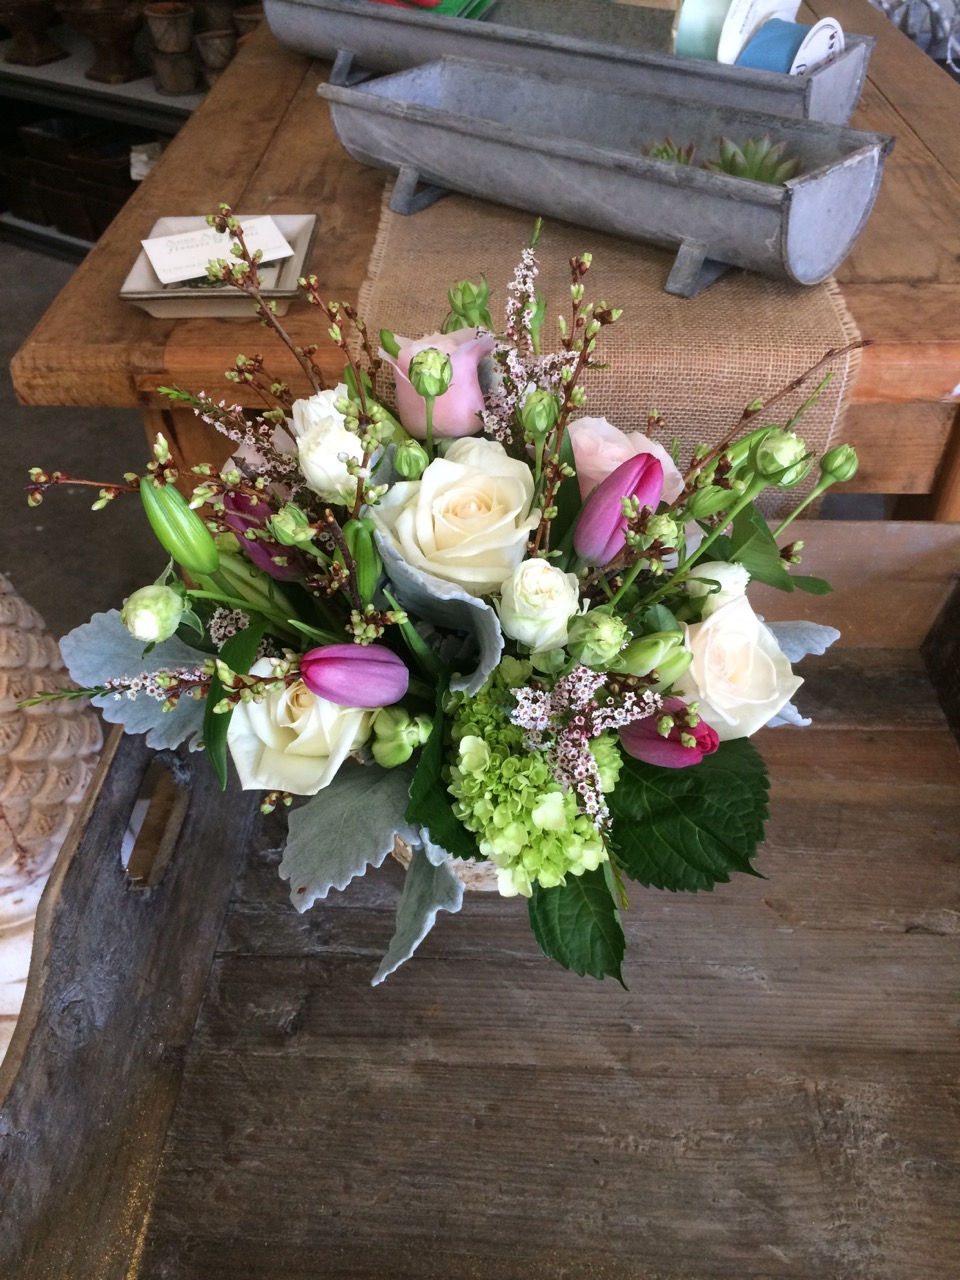 Anne_Appleman_Flowers_Delivery - 8